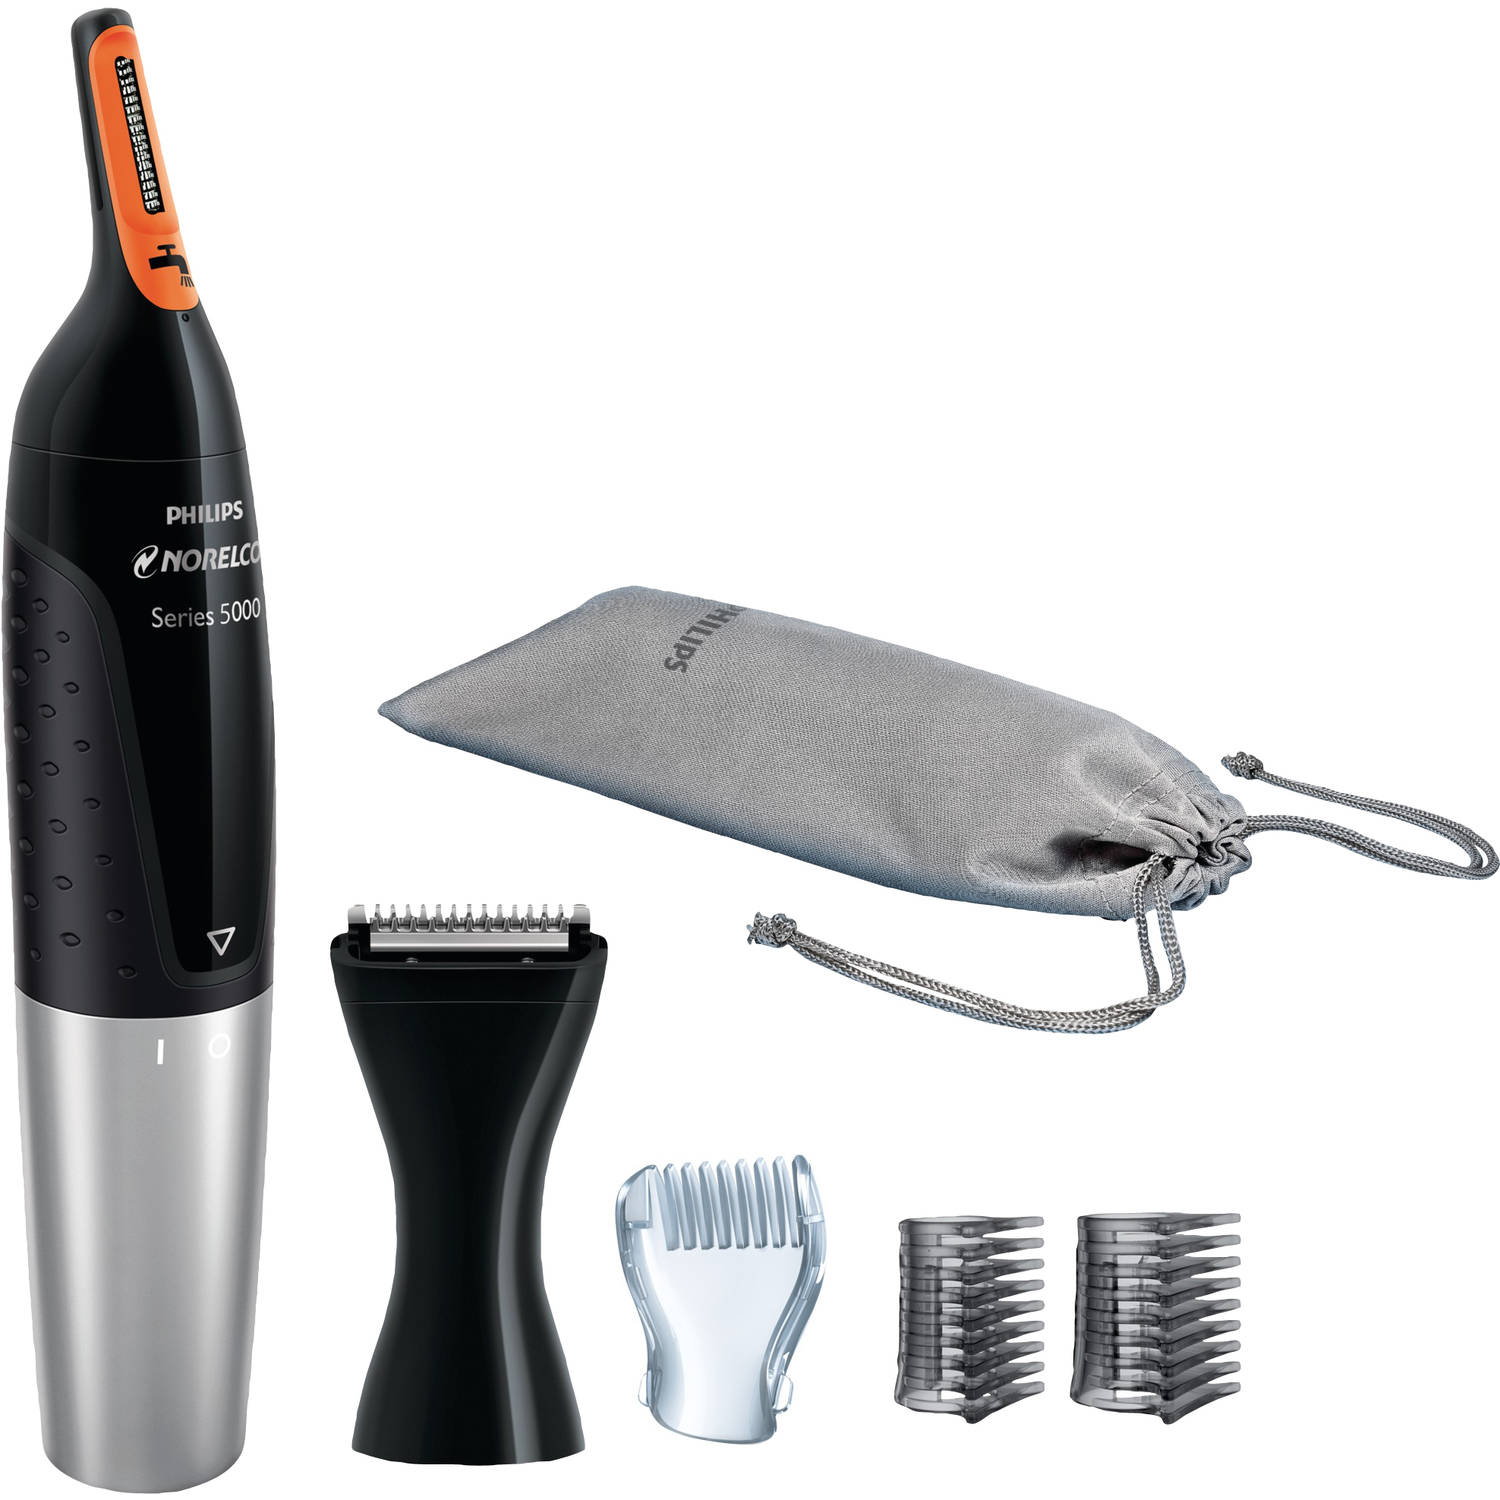 Philips Norelco NoseTrimmer (Model # NT5175/49)